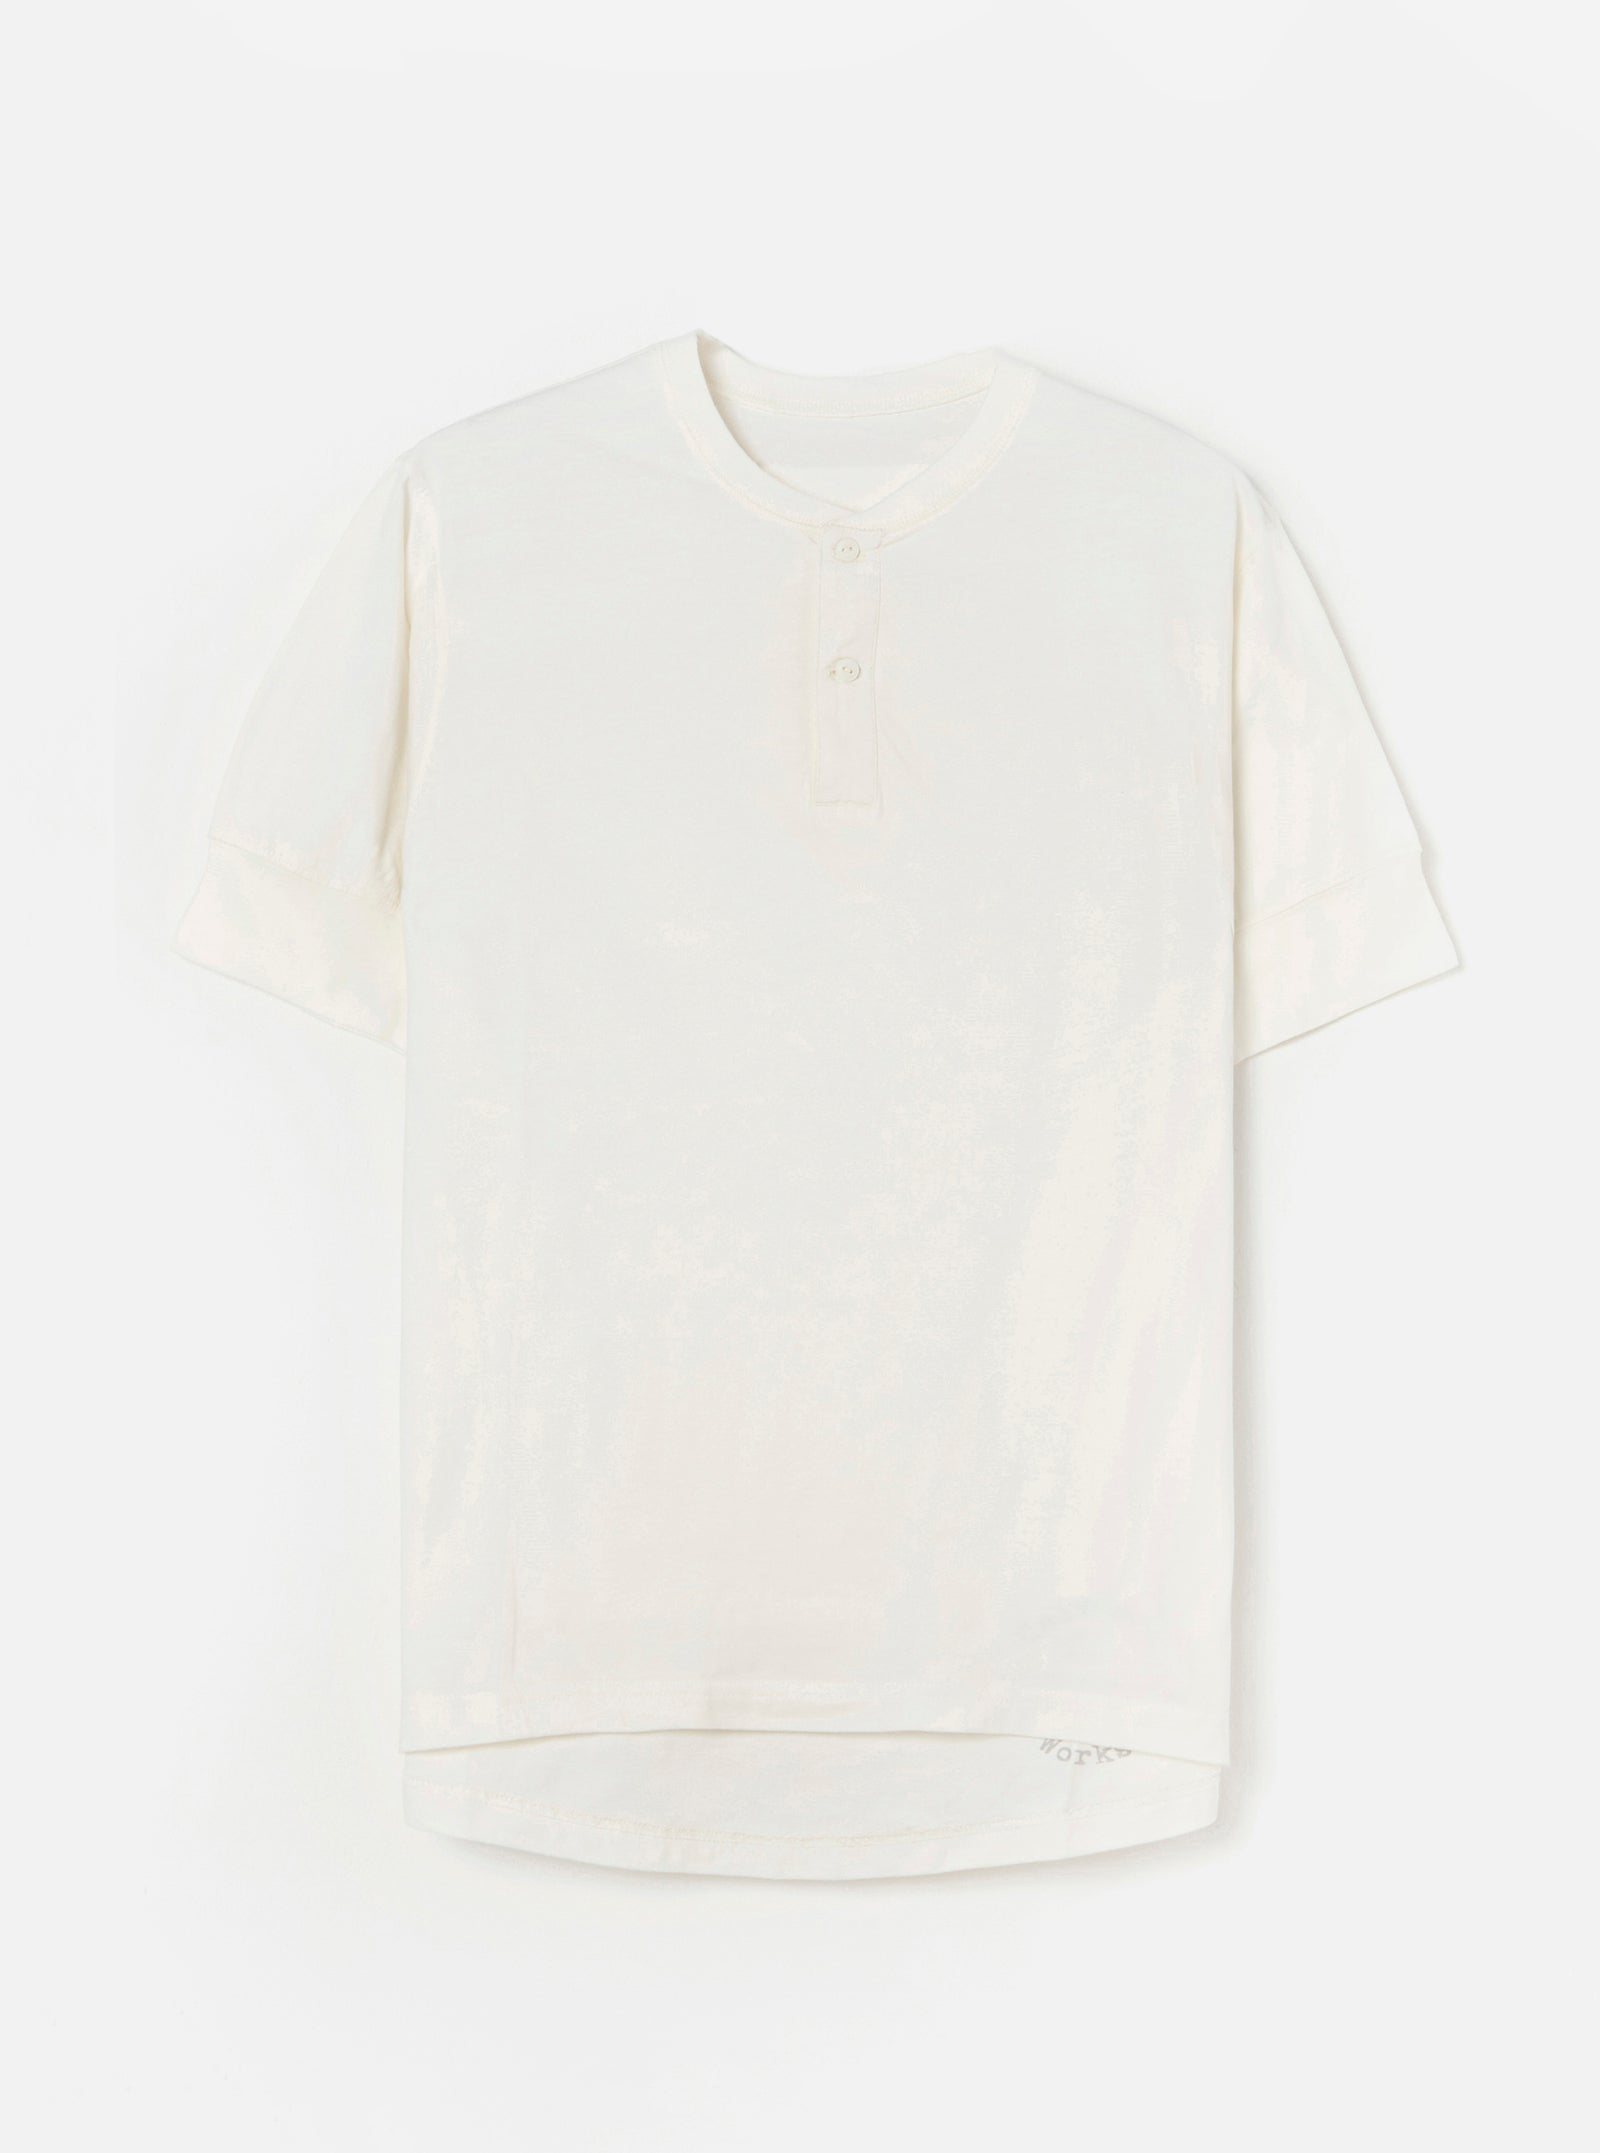 Universal Works S/S Eaton Shirt in Ecru Single Jersey